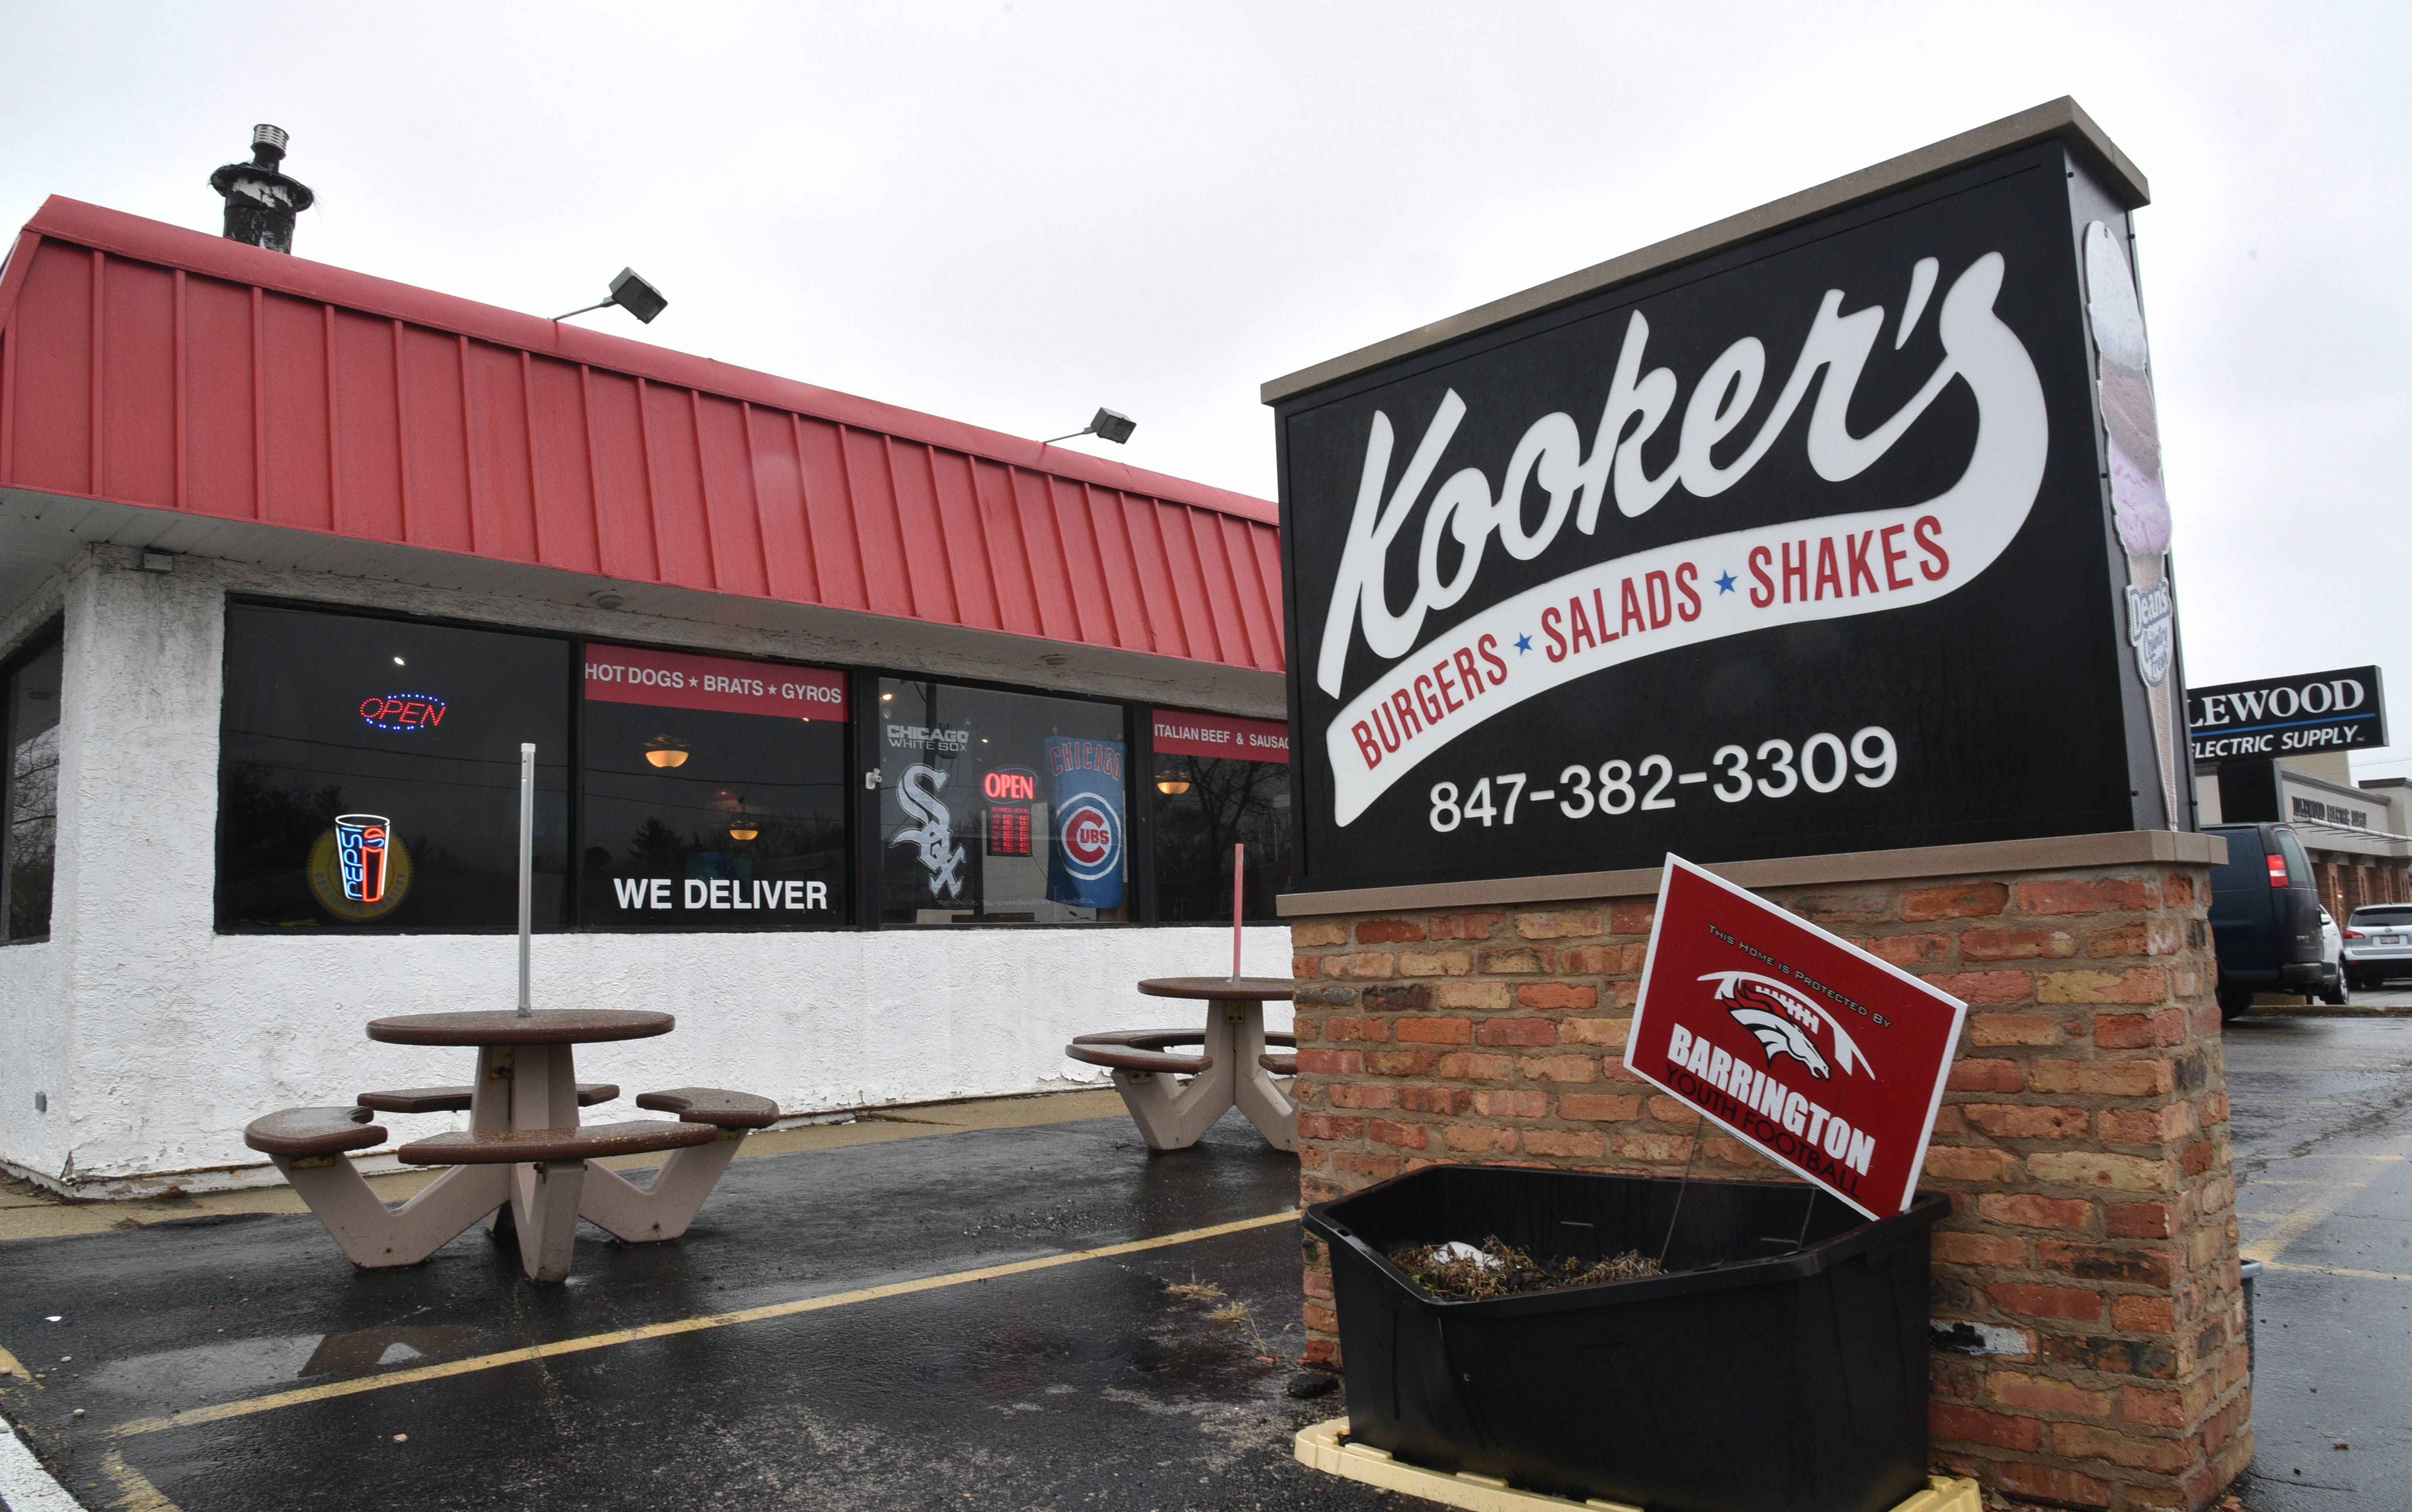 Kooker's is moving from Barrington after operating in the village for 28 years.